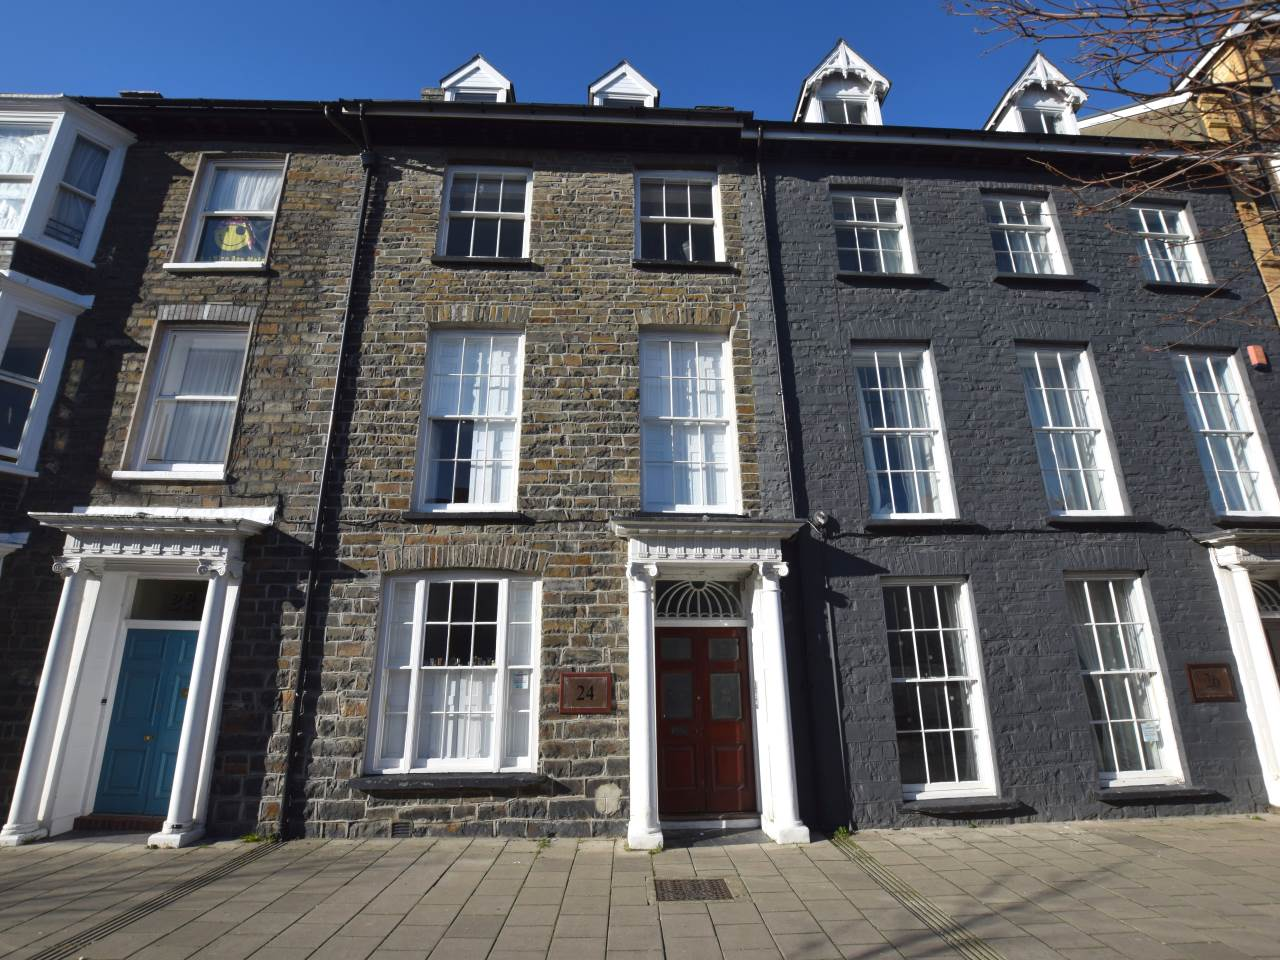 3 bed flat to rent in Aberystwyth, Ceredigion 0